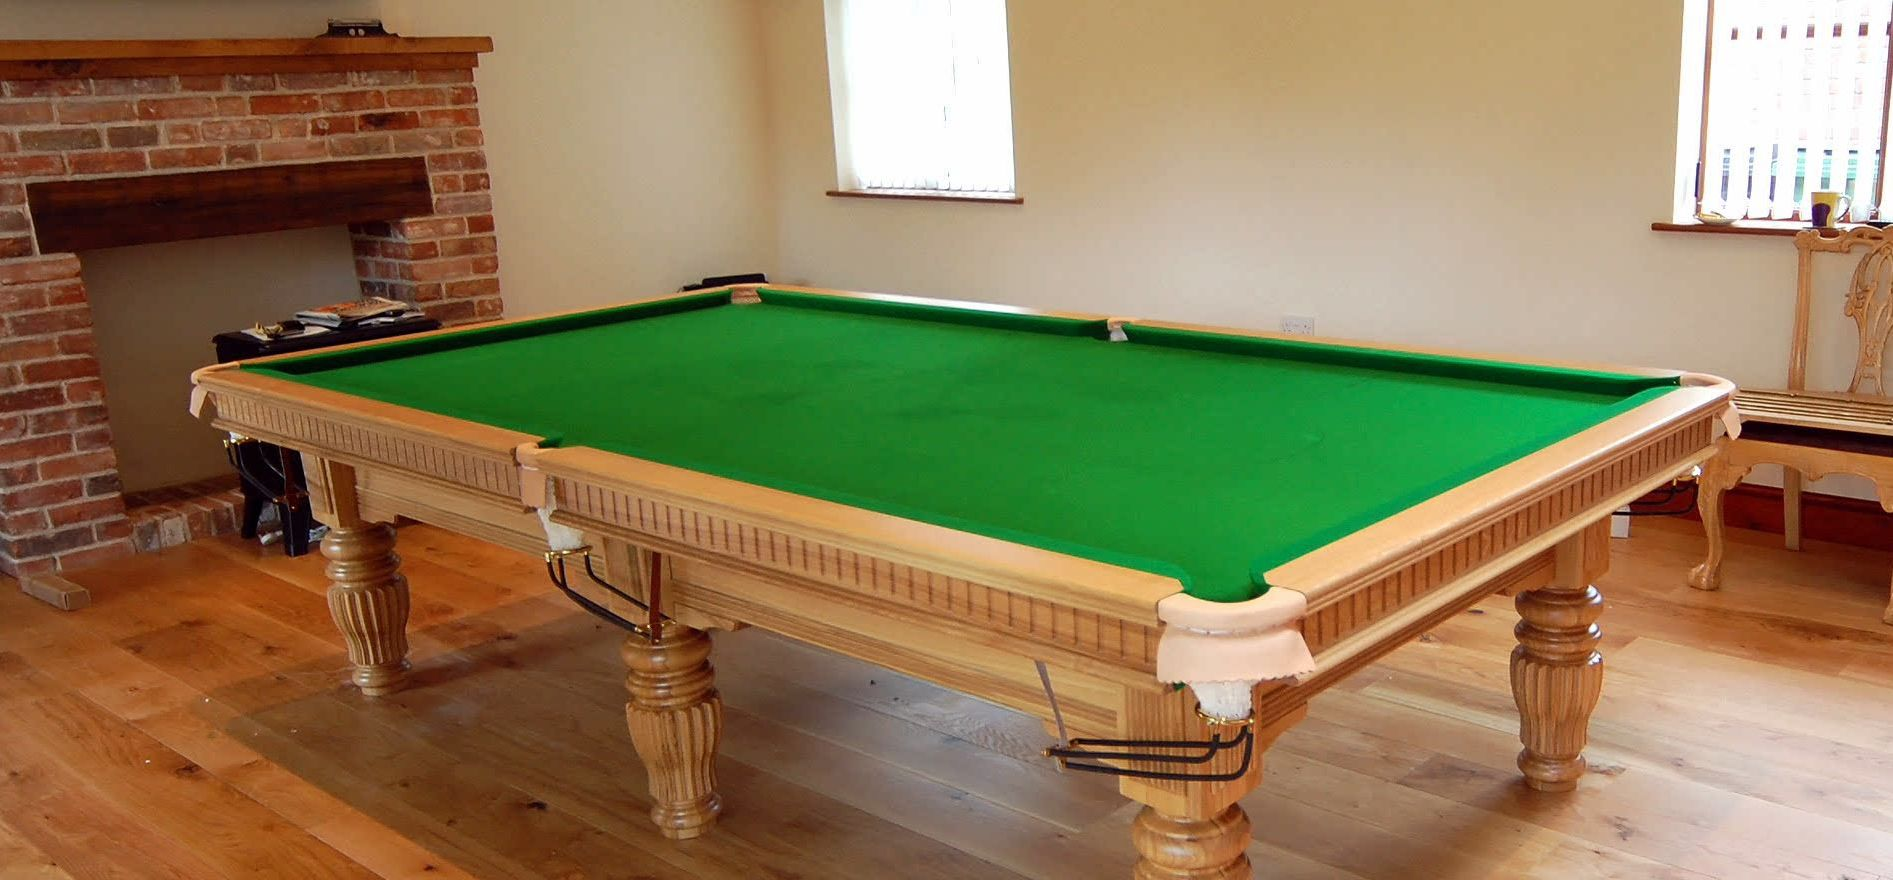 B U0026 A Snooker U0026 Pool Ltd